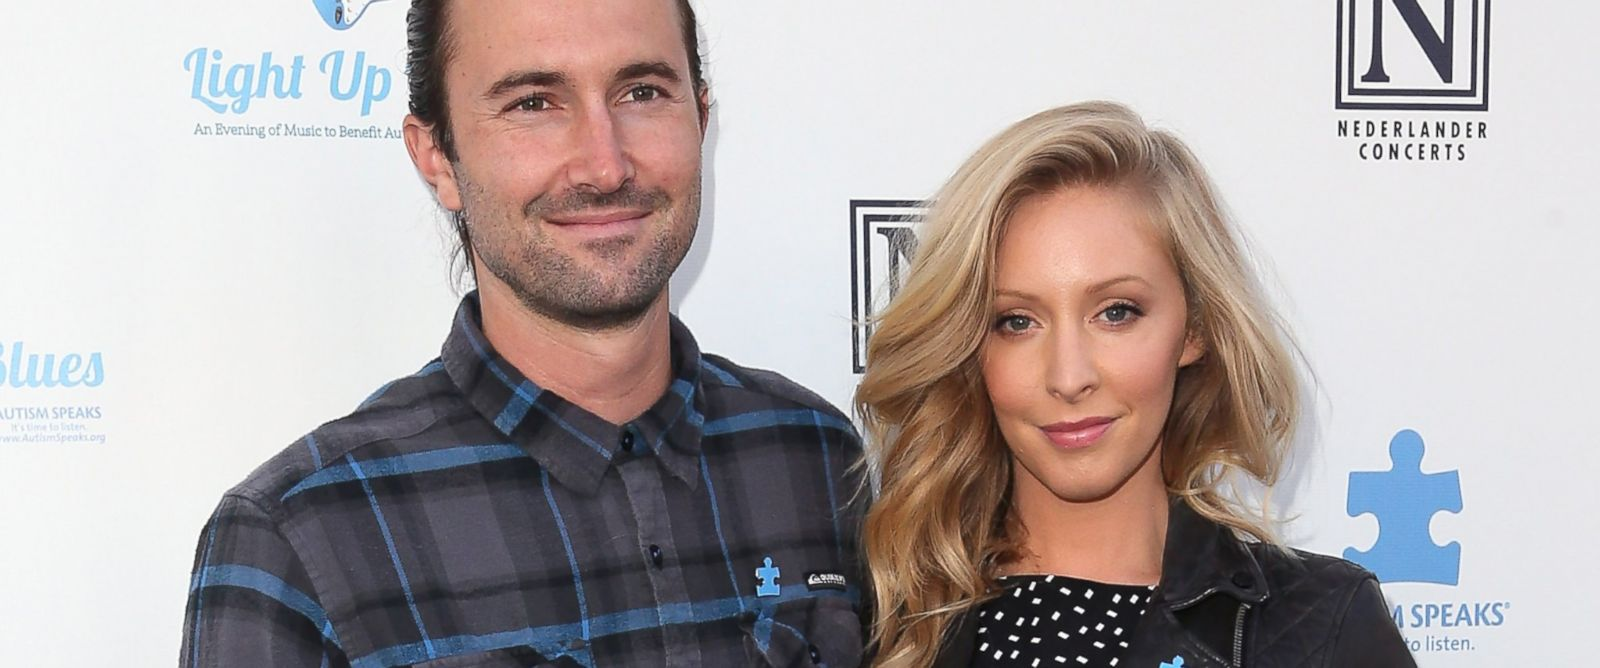 PHOTO: Musicians Brandon Jenner and Leah Felder attend the 2nd Light Up The Blues Concert, an evening of music to benefit Autism Speaks, on April 5, 2014 in Los Angeles.